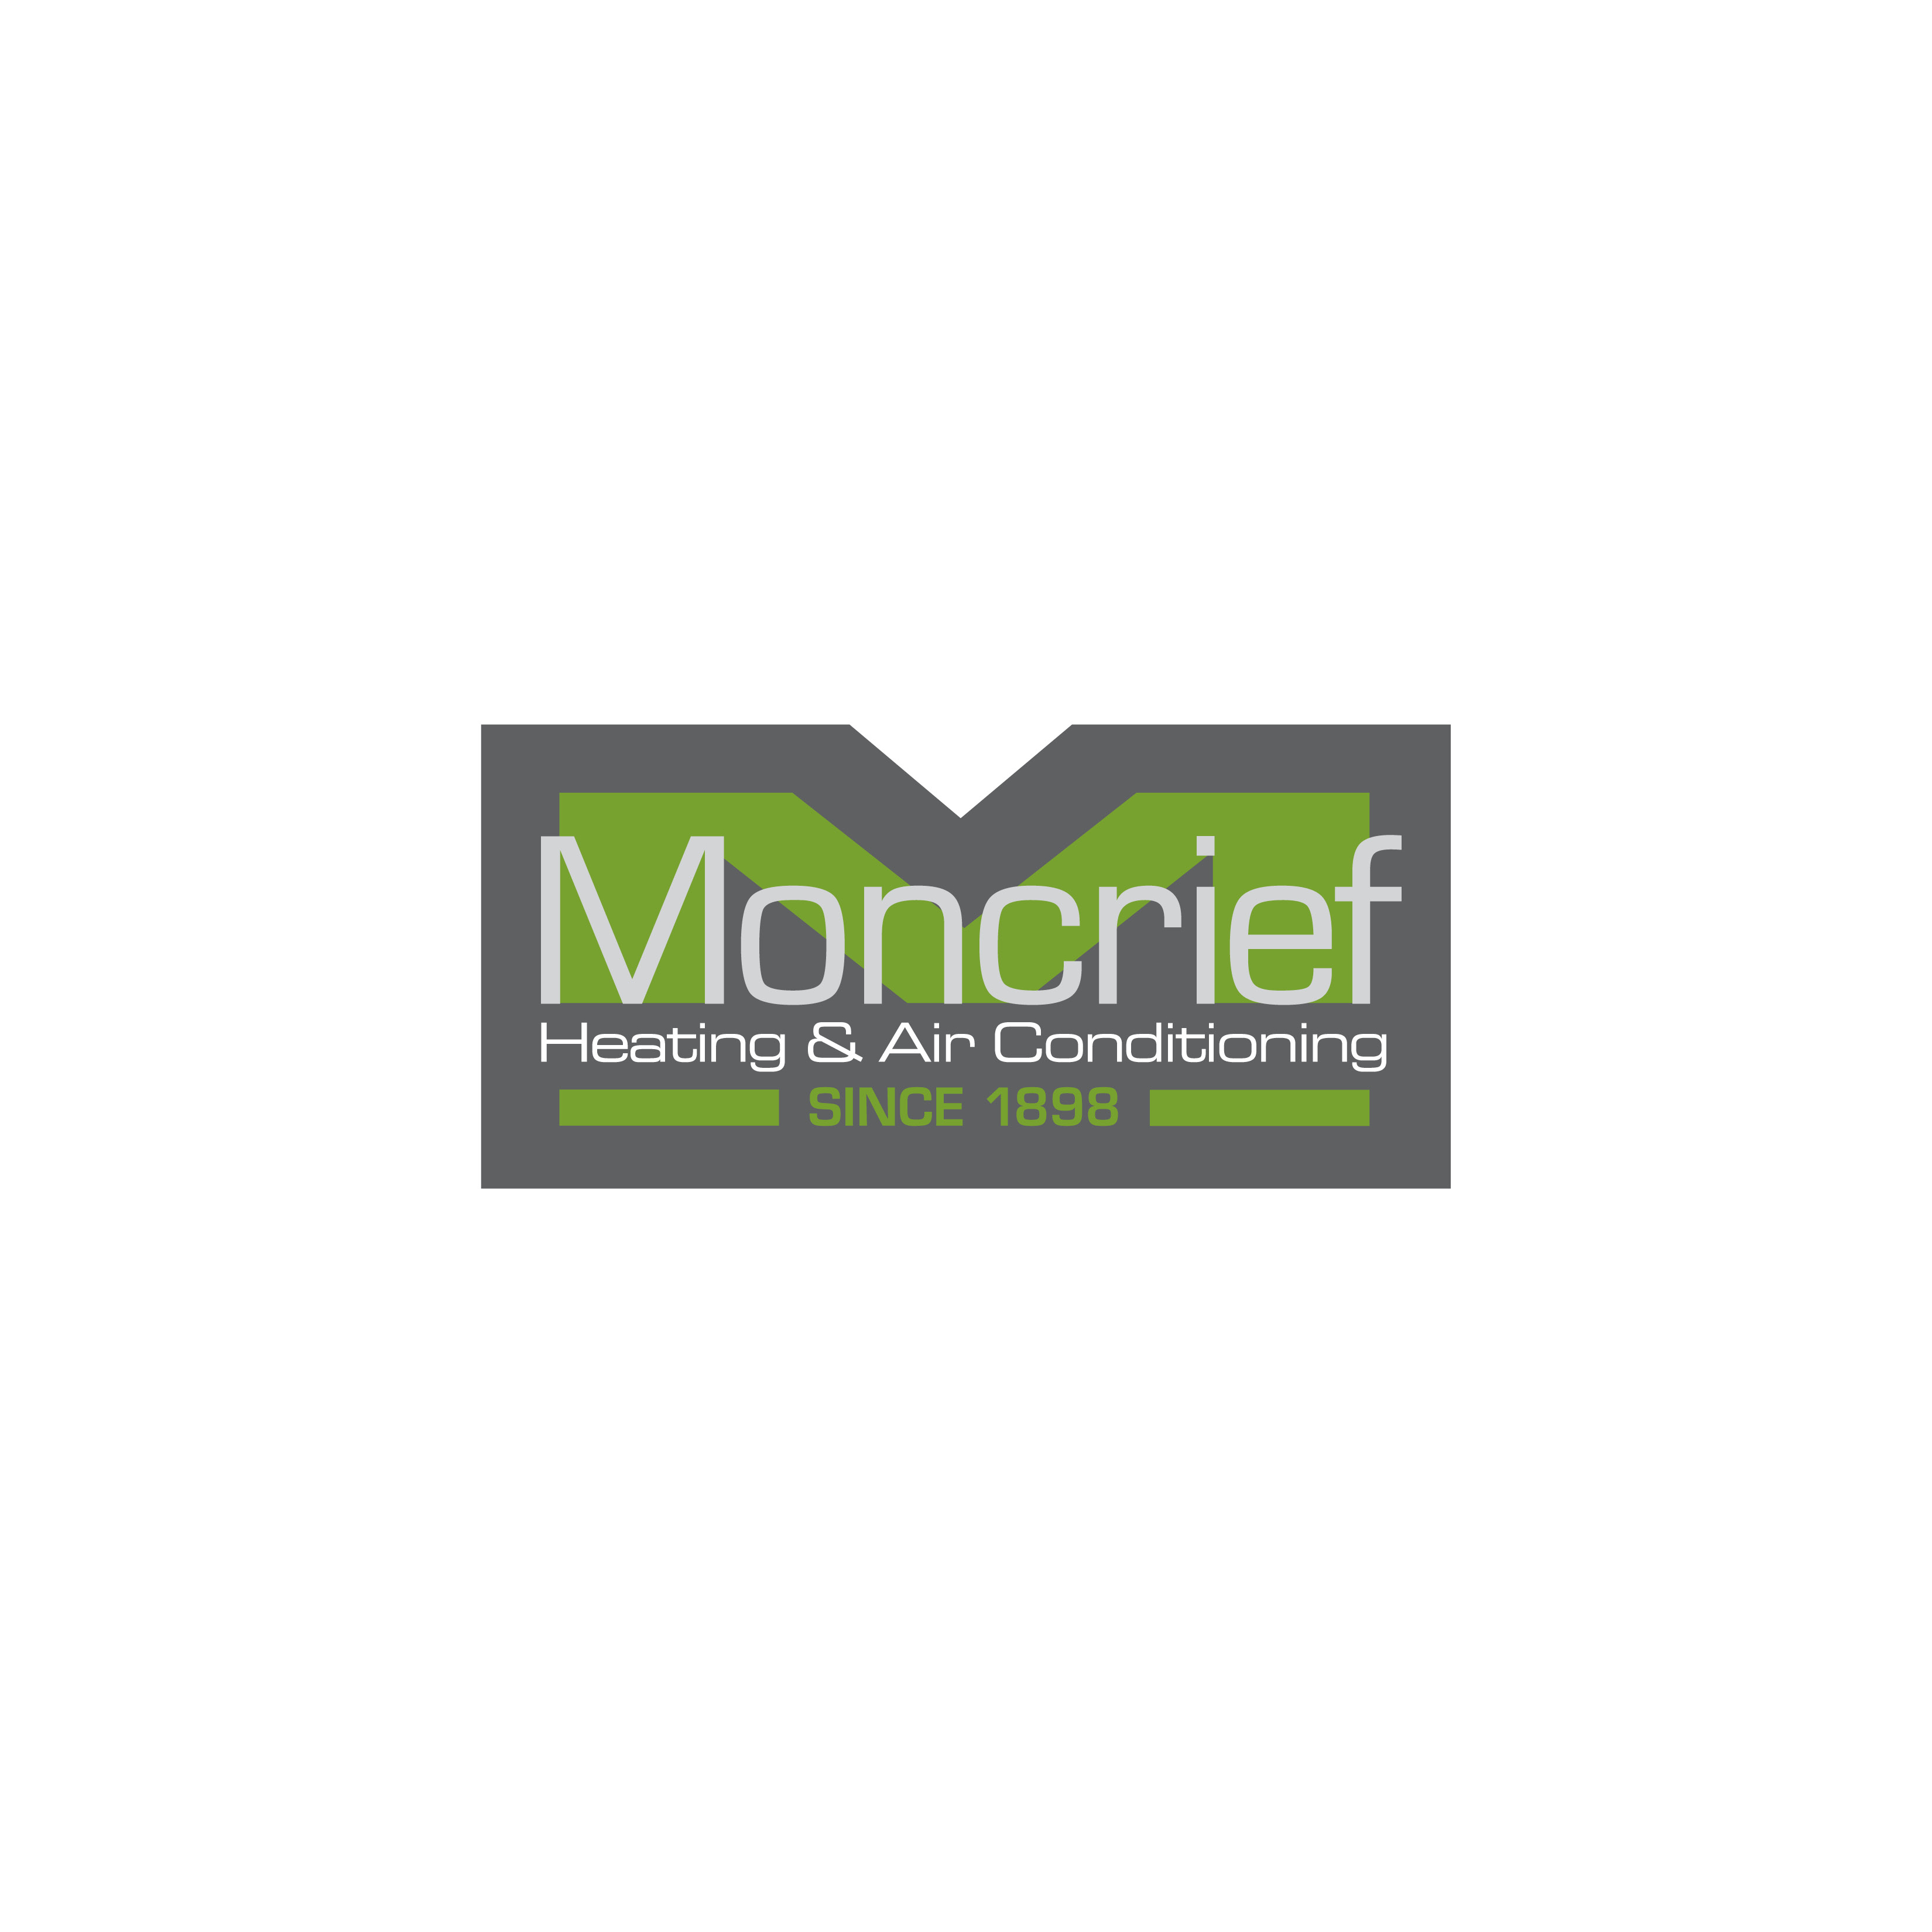 Moncrief Heating and Air